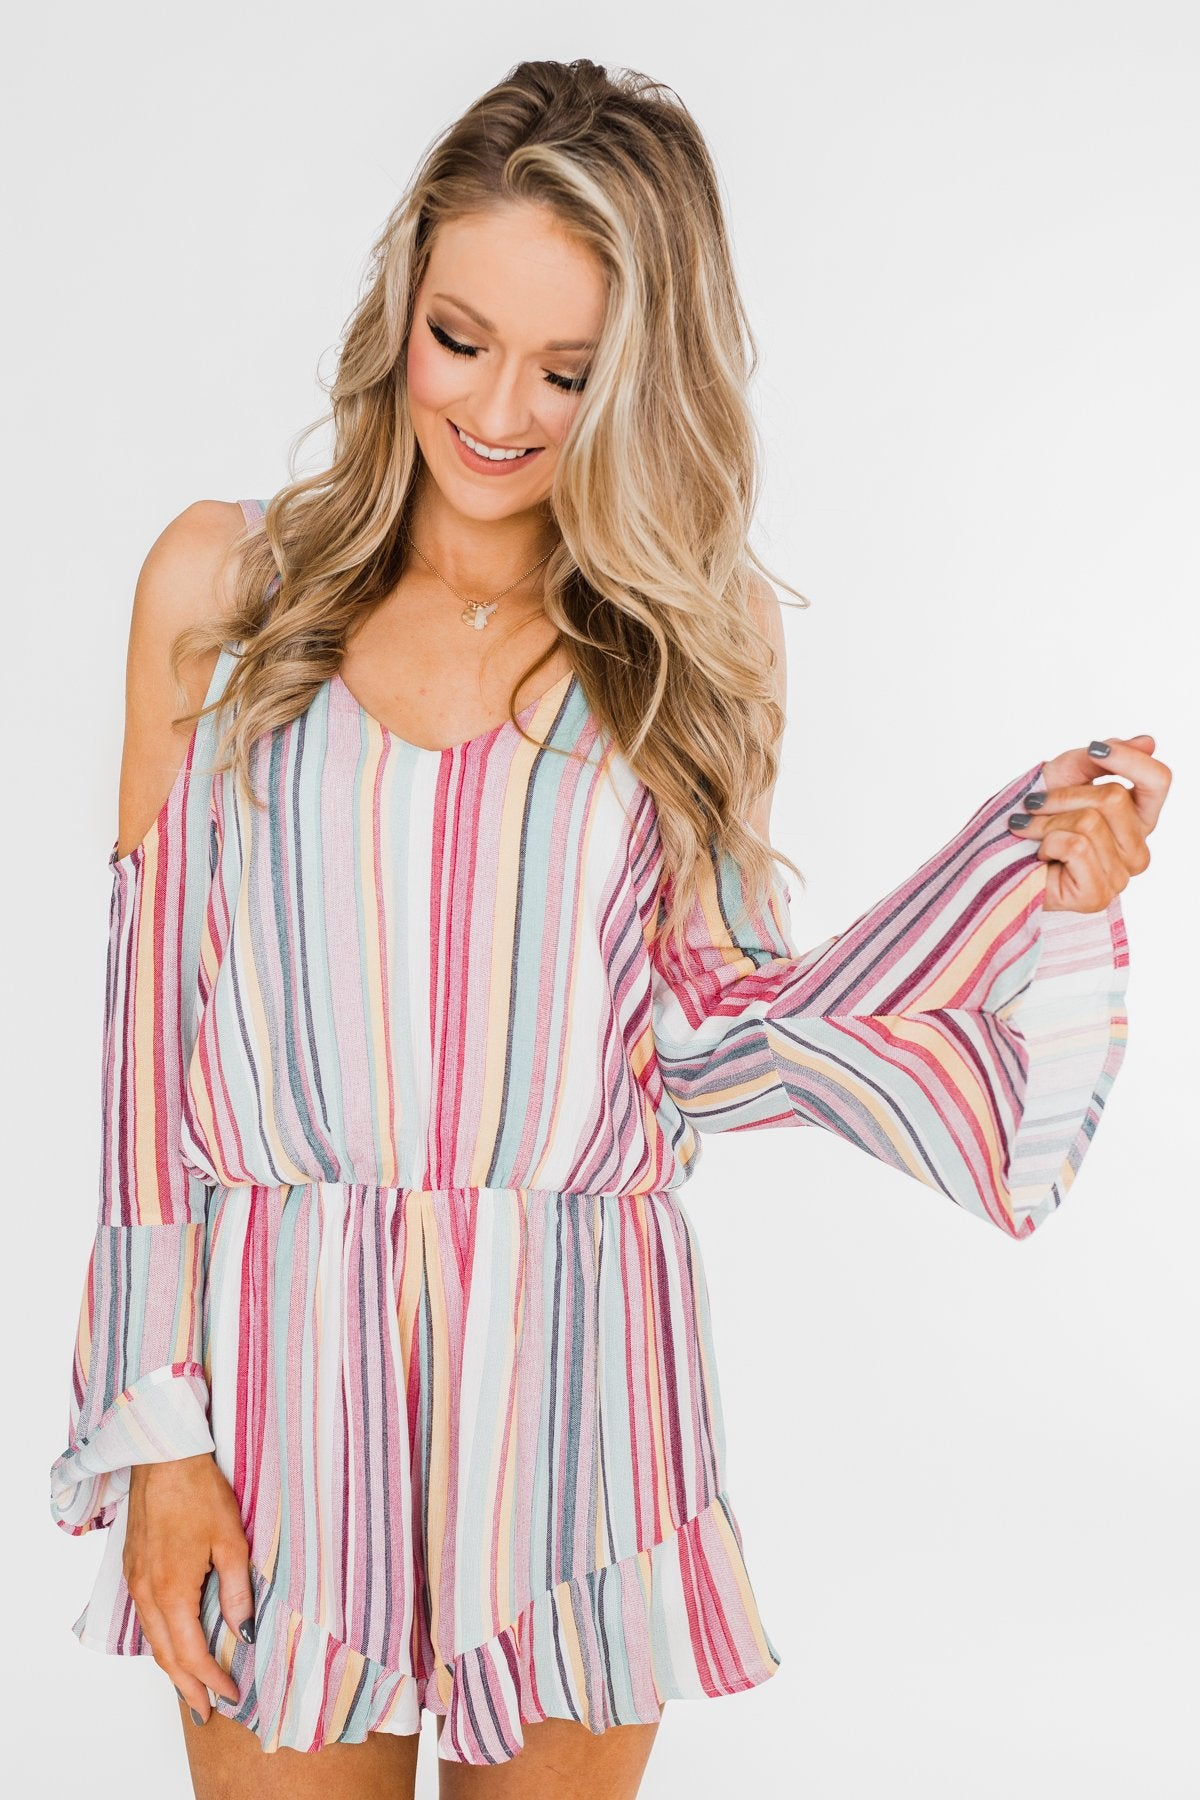 Summer Lovin' Striped Romper- Multi-Colored